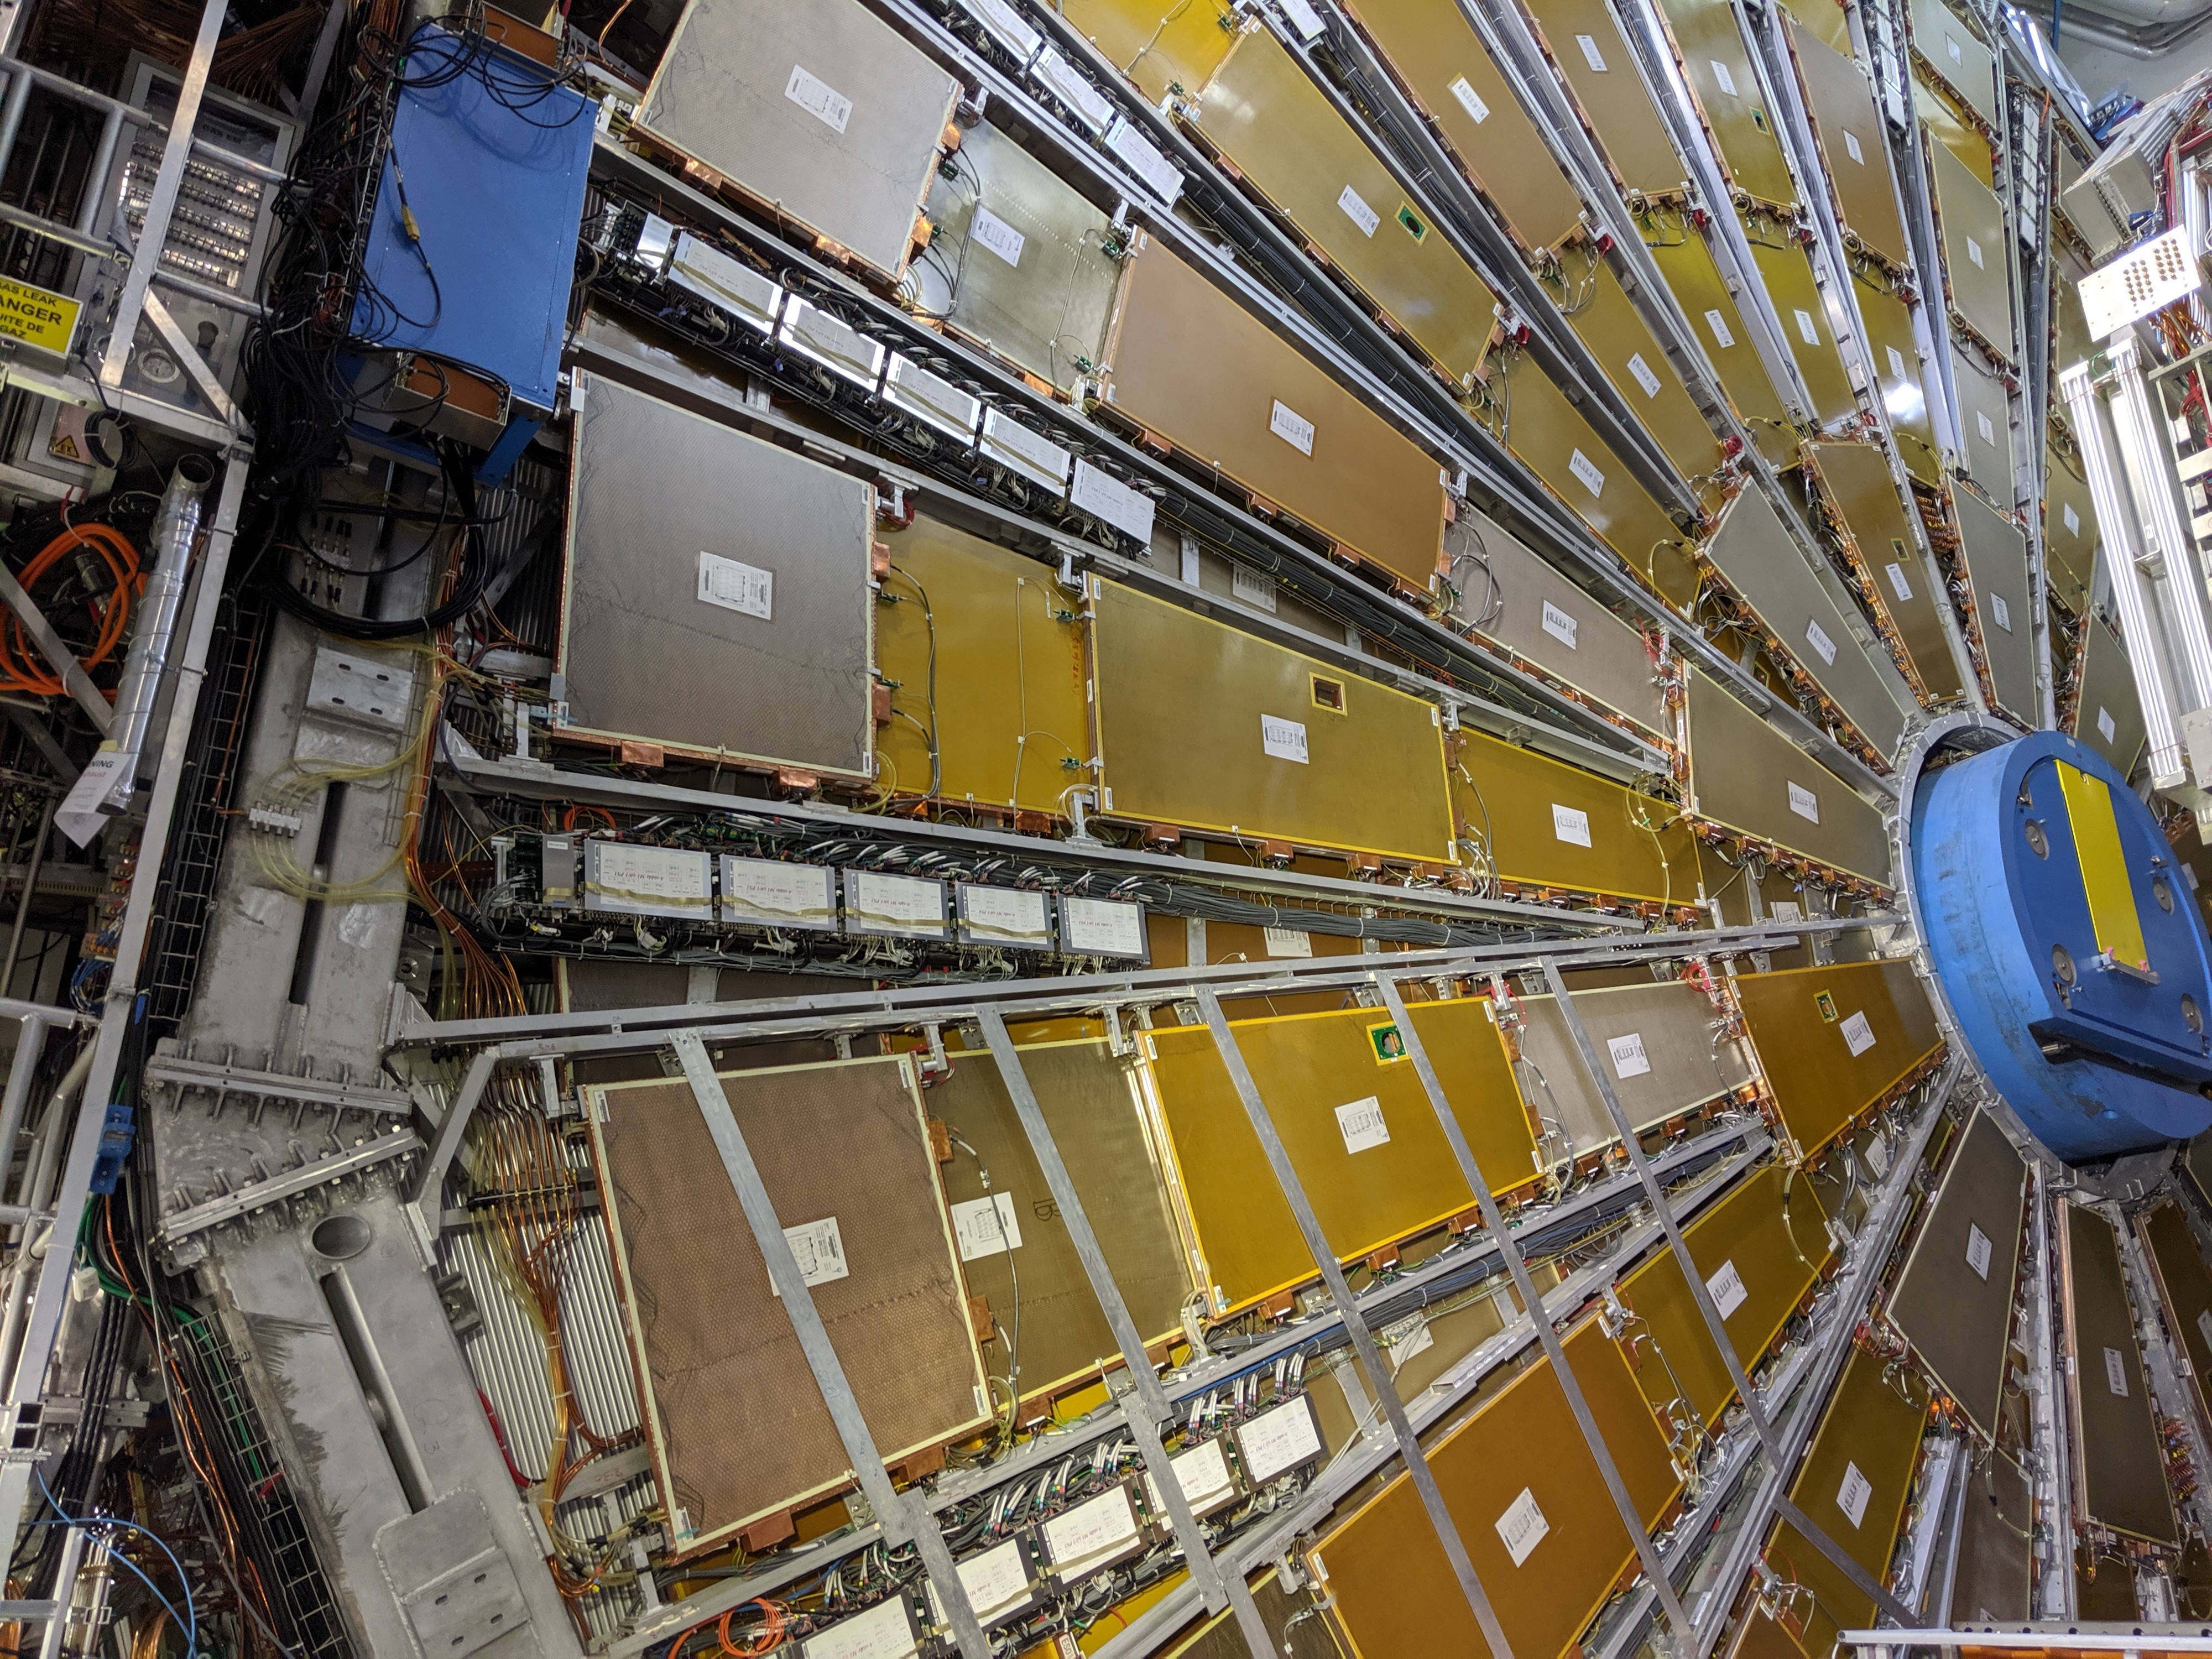 ATLAS detector at the LHC, as viewed from underground